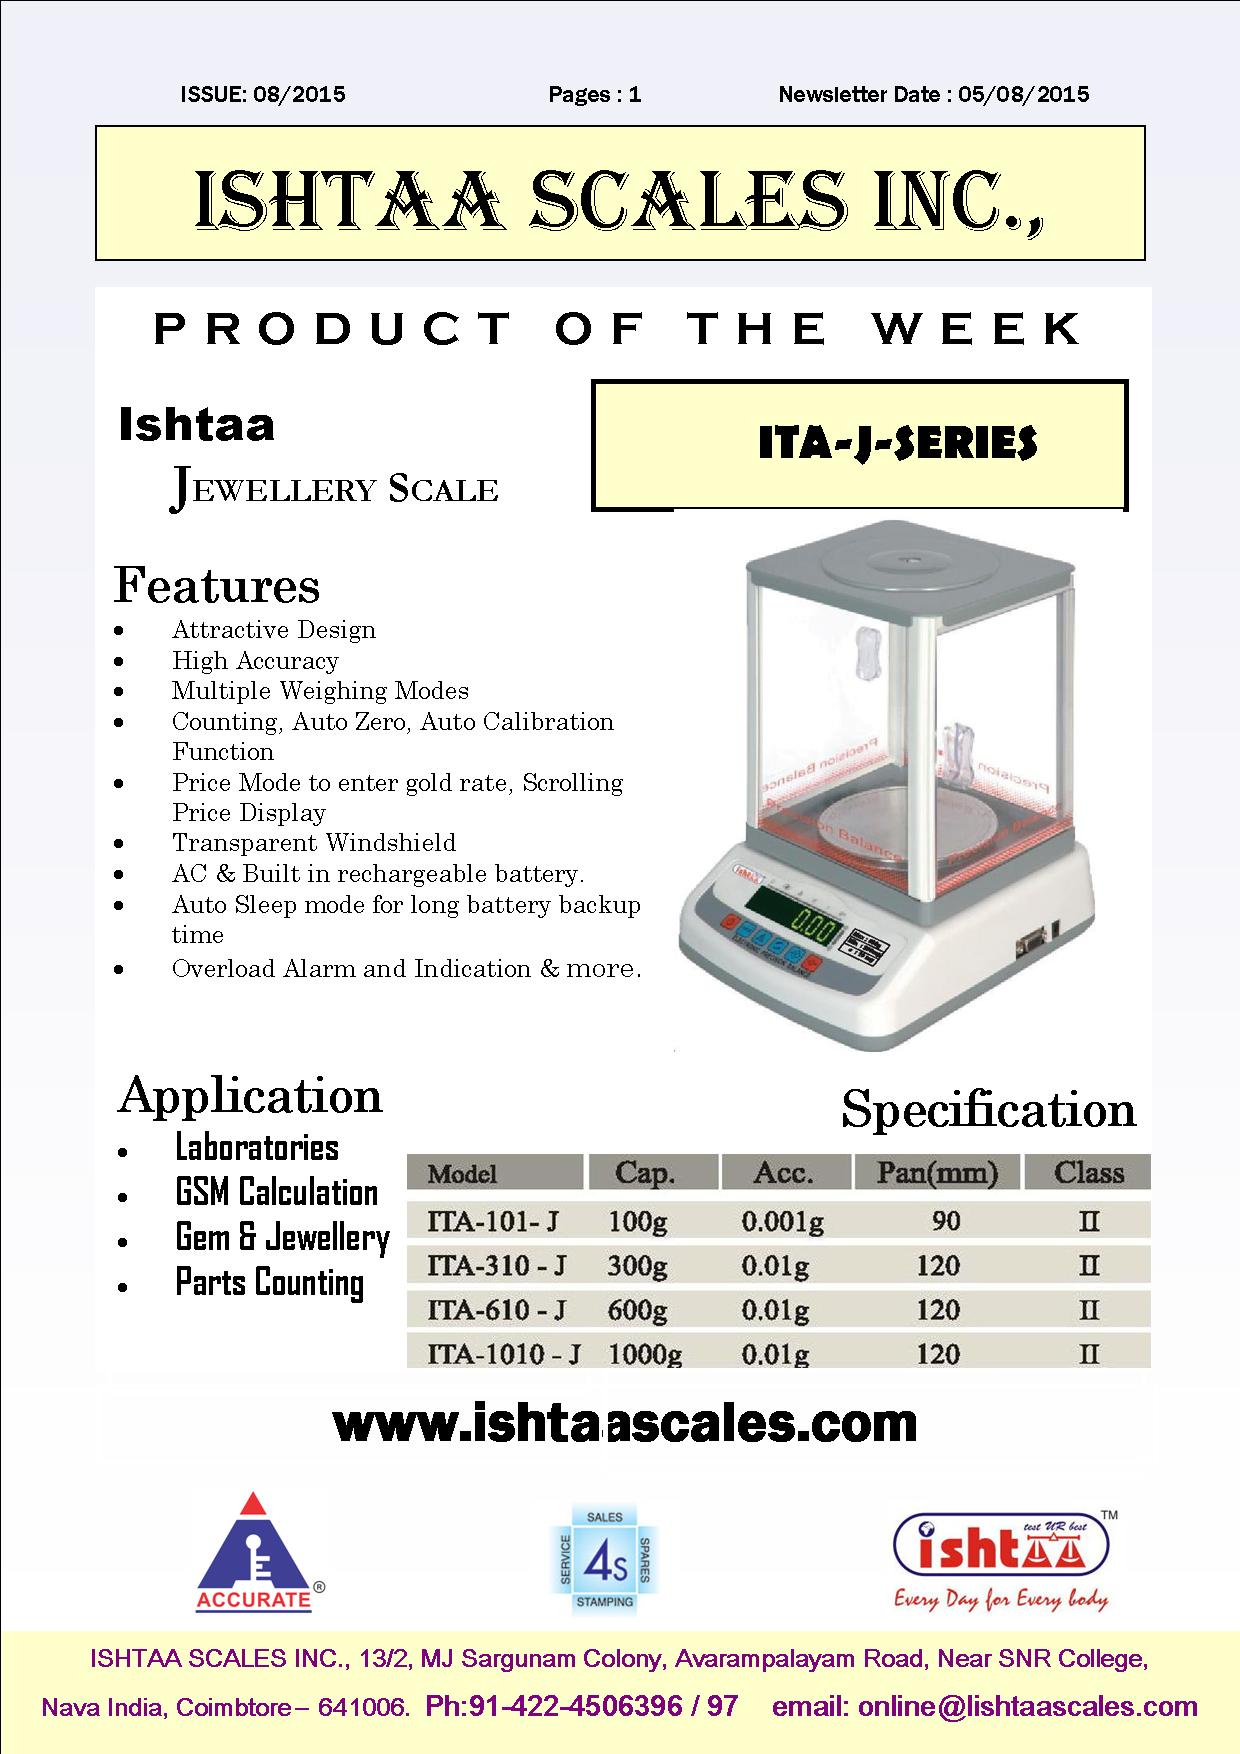 Most Efficient Jewellery Scale - High Accuracy   Ishtaa - ITA J Series  Best Choice for All Precision Weighing, Scientific Weighing and Laboratory Weighing. Call: 09843016028 ; Mail: online@ishtaascales.com